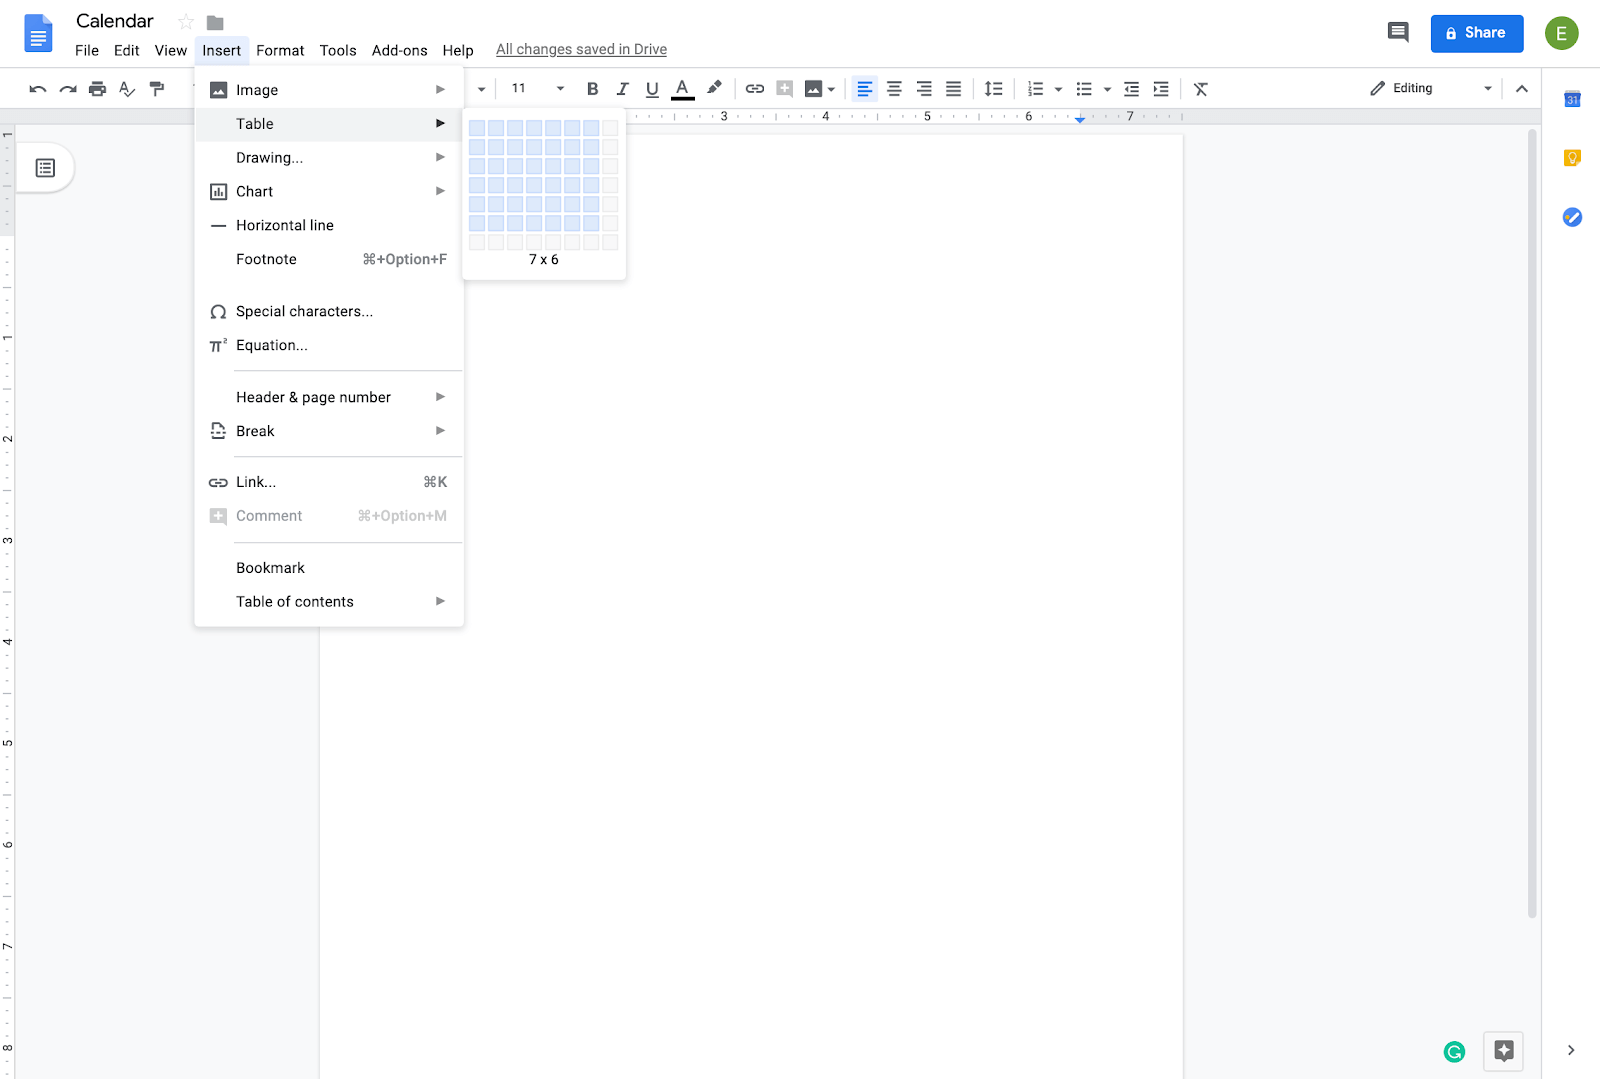 adding table to new calendar in google docs